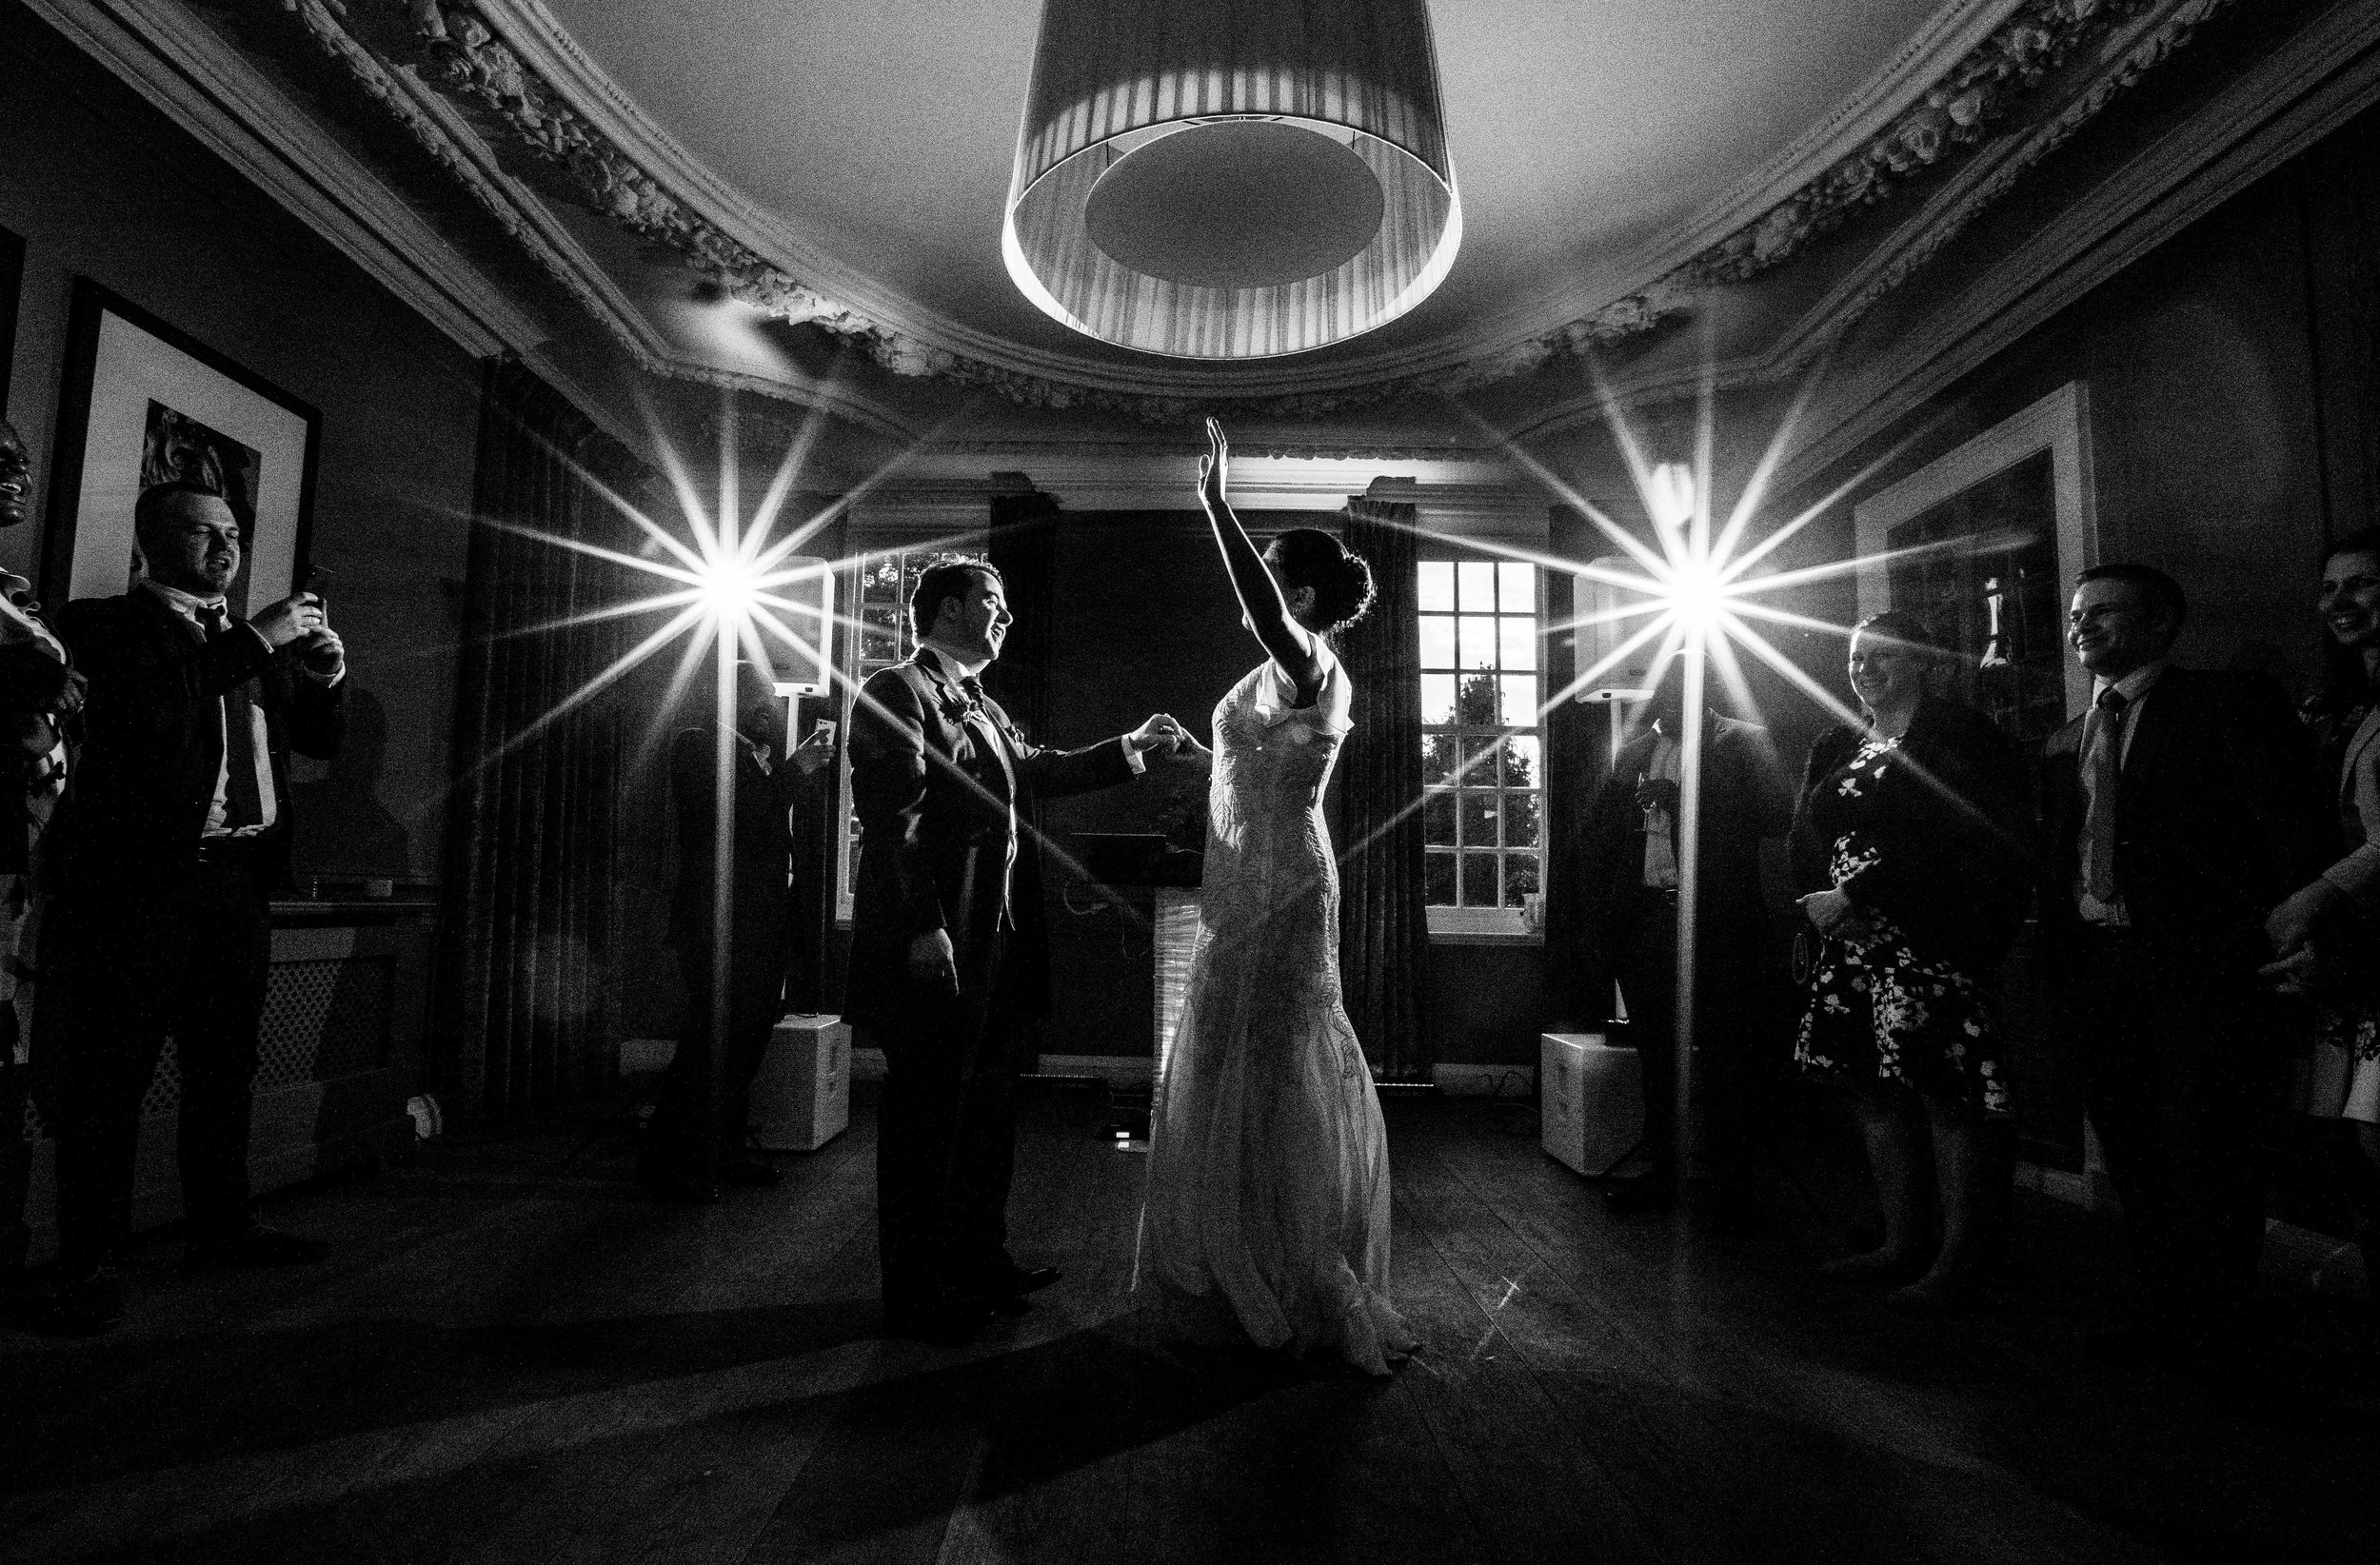 gorse-hill-hotel-wedding-photography-videography-surrey-london-666